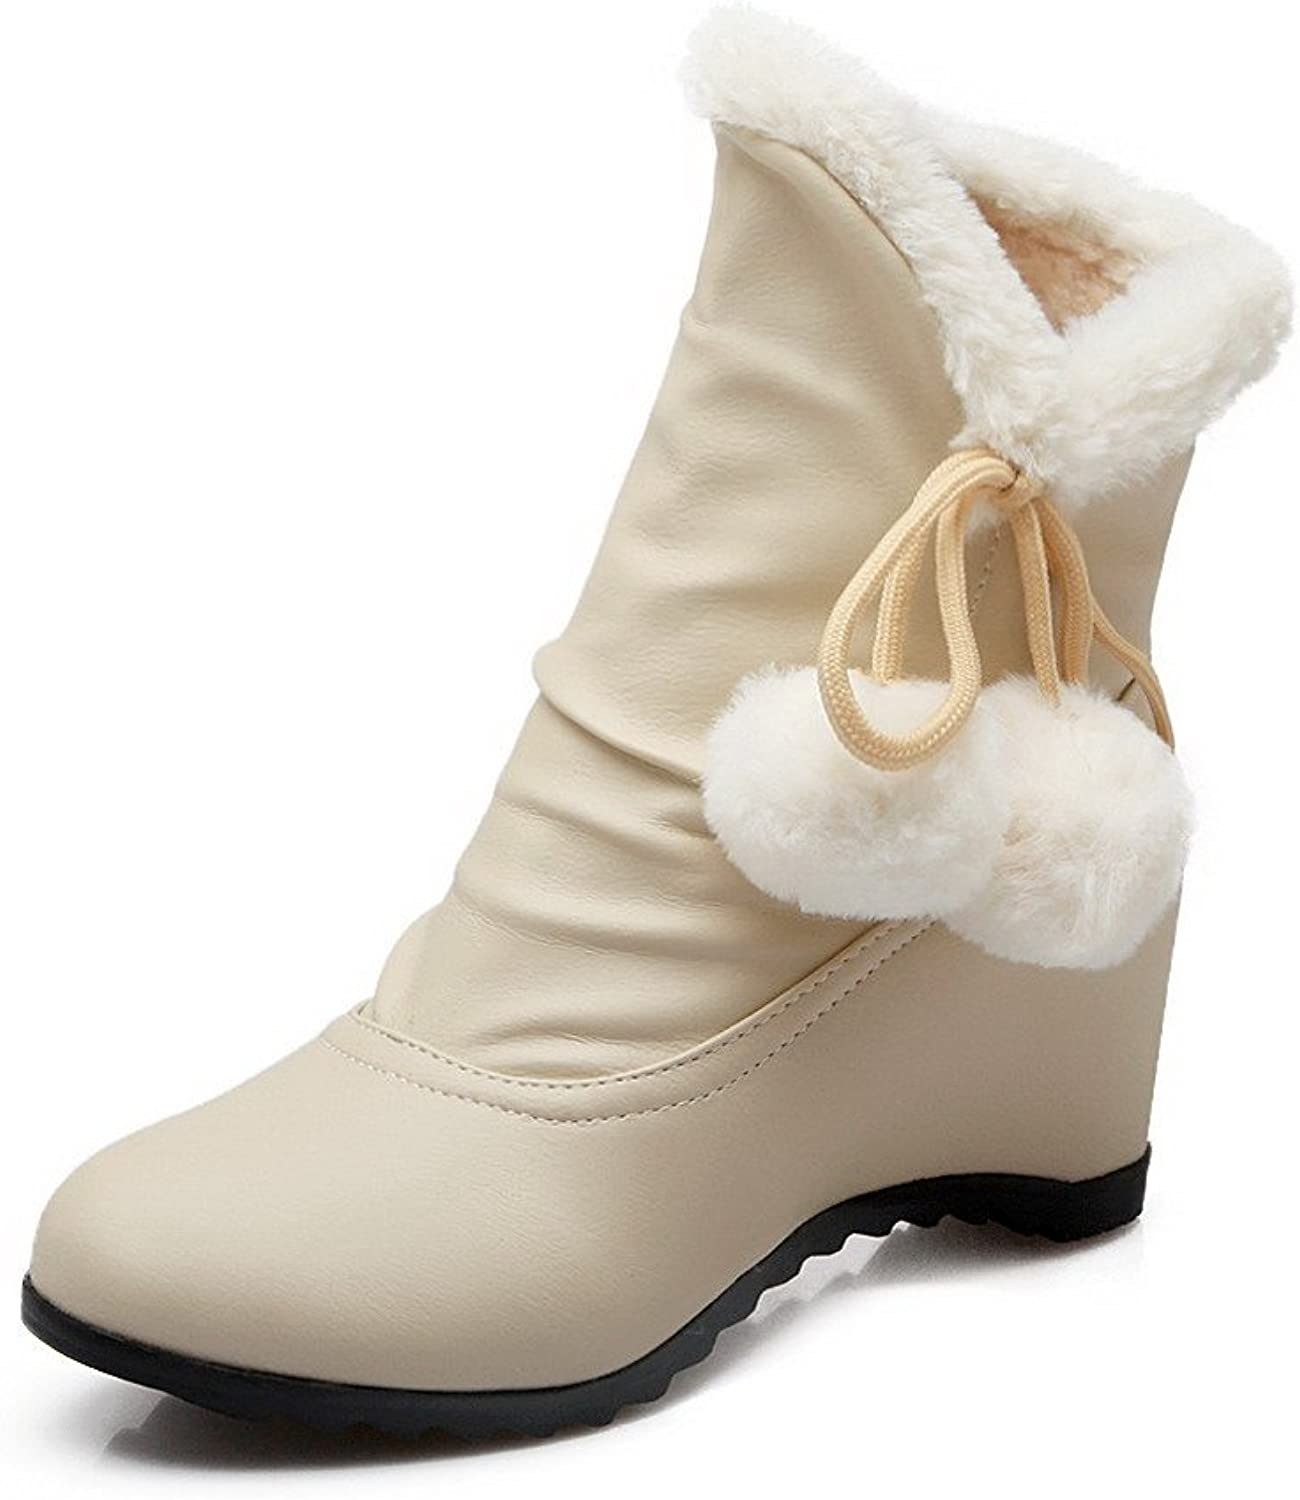 WeiPoot Women's Round Closed Toe Low-top Kitten-Heels Solid PU Boots with Bows